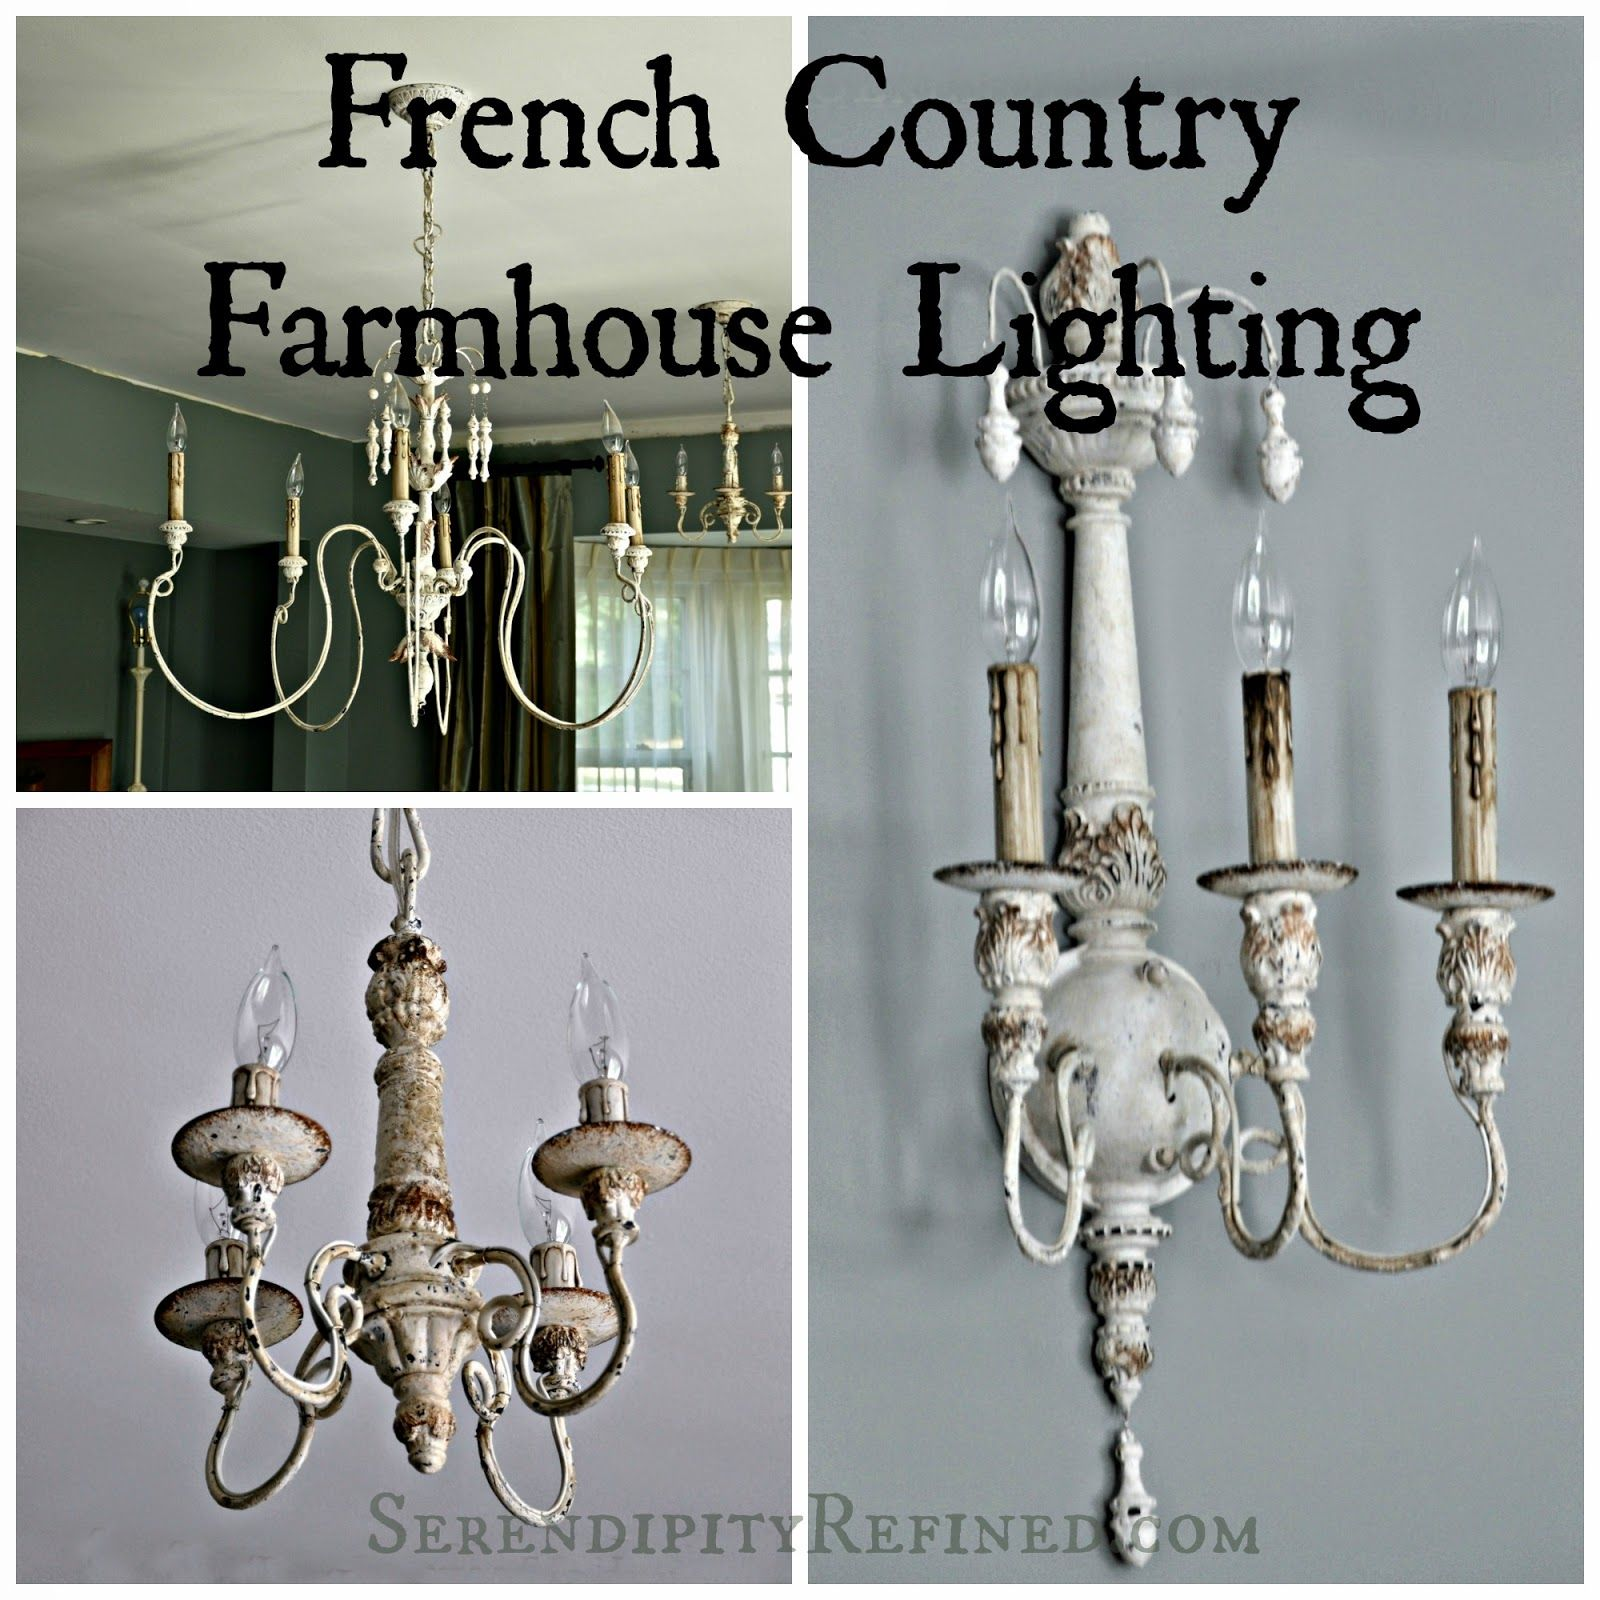 French country farmhouse style chandeliers and sconces with french country farmhouse style chandeliers and sconces with resources serendipityrefined arubaitofo Choice Image